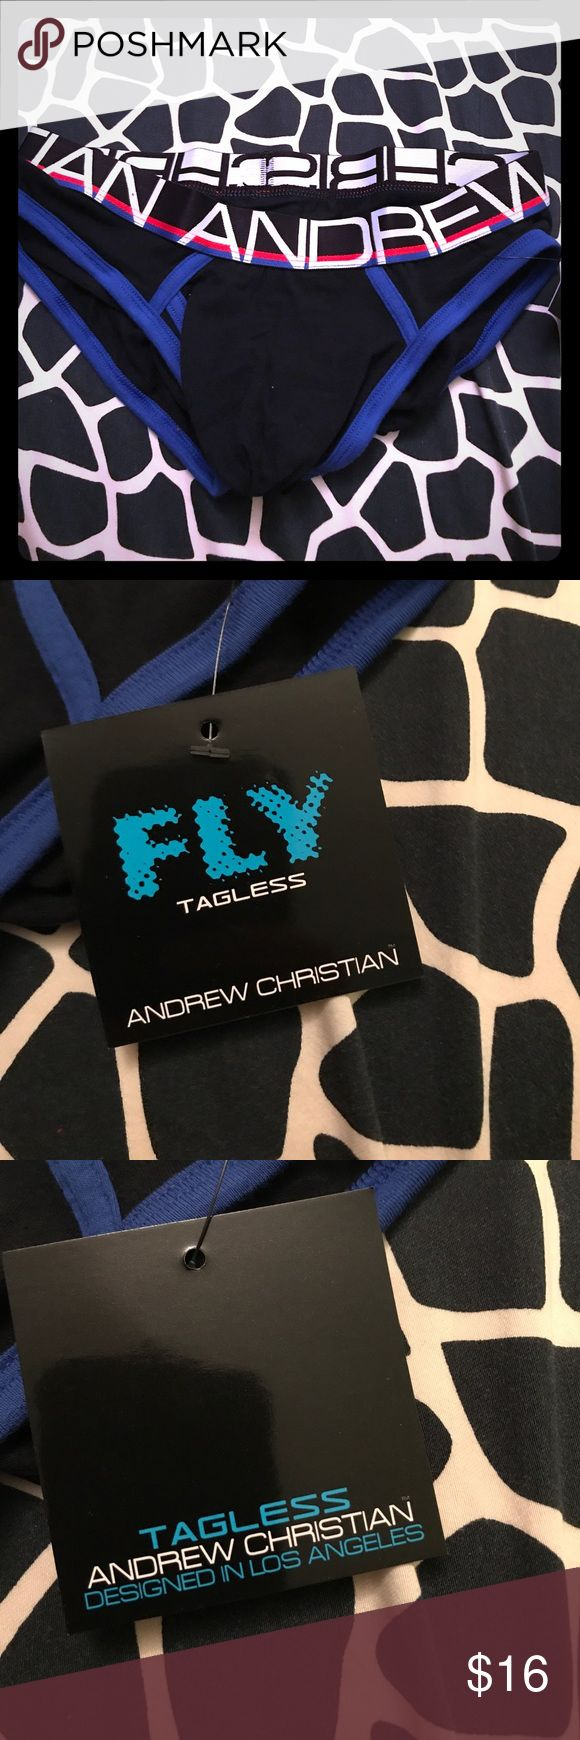 Andrew Christian sexy Fly Tagless ❤️😻❤️ Andrew Christian sexy Fly Tagless ❤️😻❤️ Brand new/Never worn!! Andrew Christian Underwear & Socks Briefs